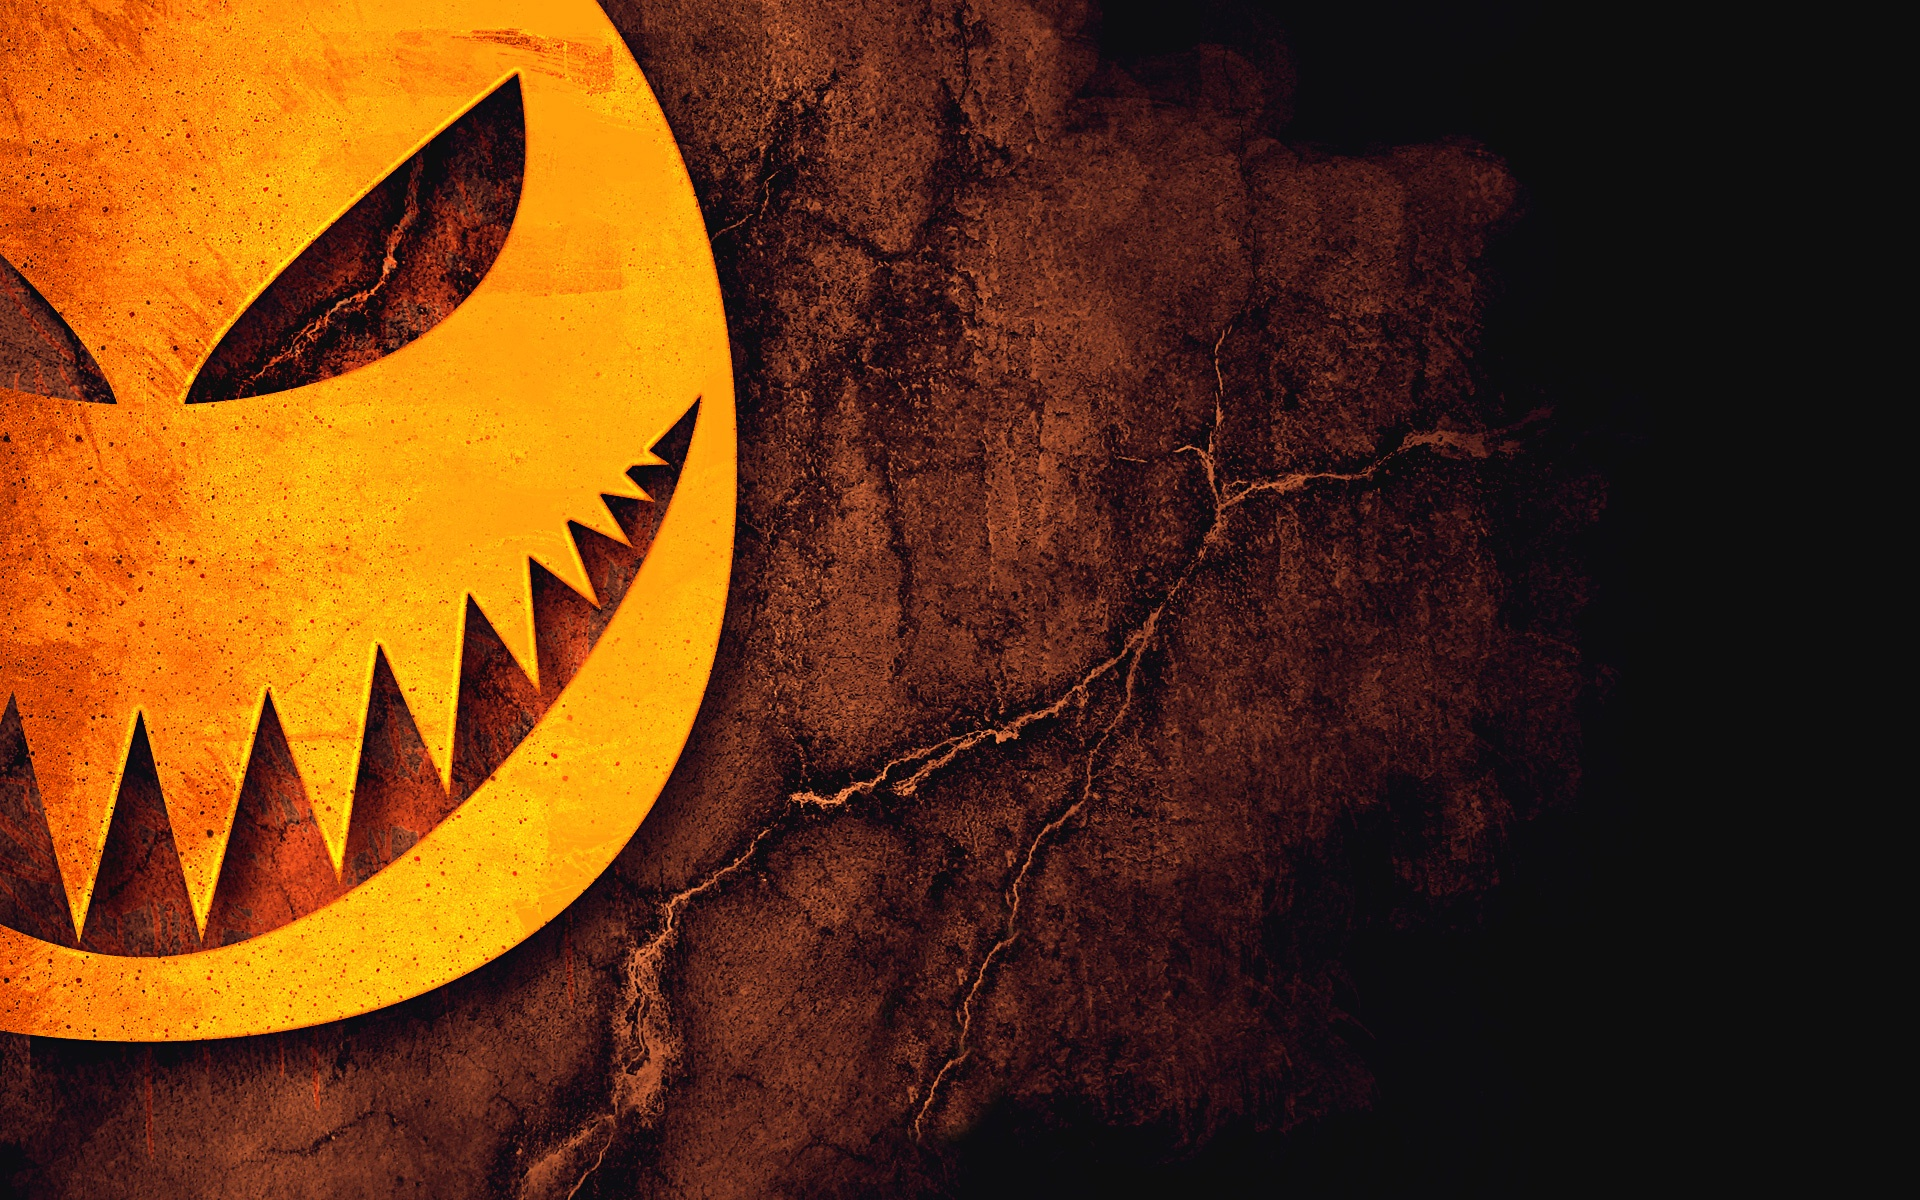 Scary hd wallpapers pictures images - Scary halloween pumpkin wallpaper ...